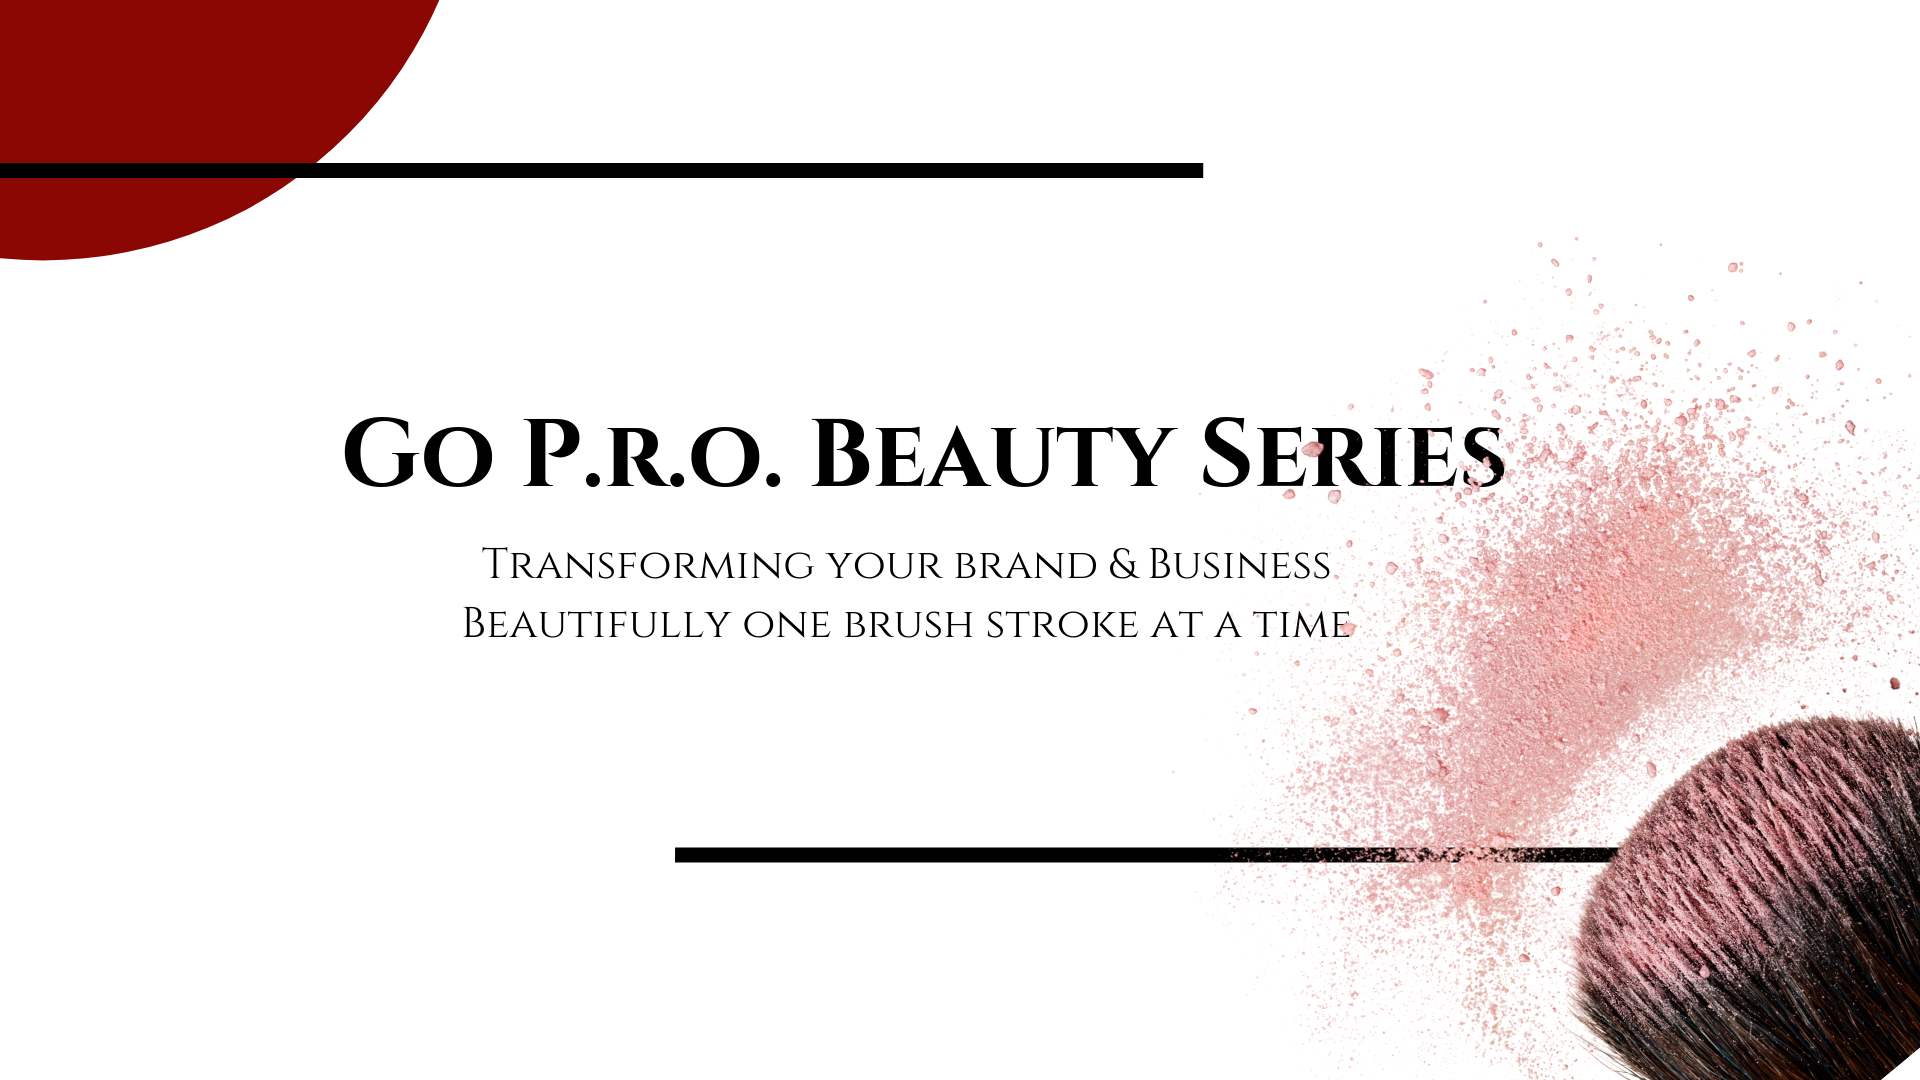 GO PRO BEAUTY SERIES HEADER IMAGE.png